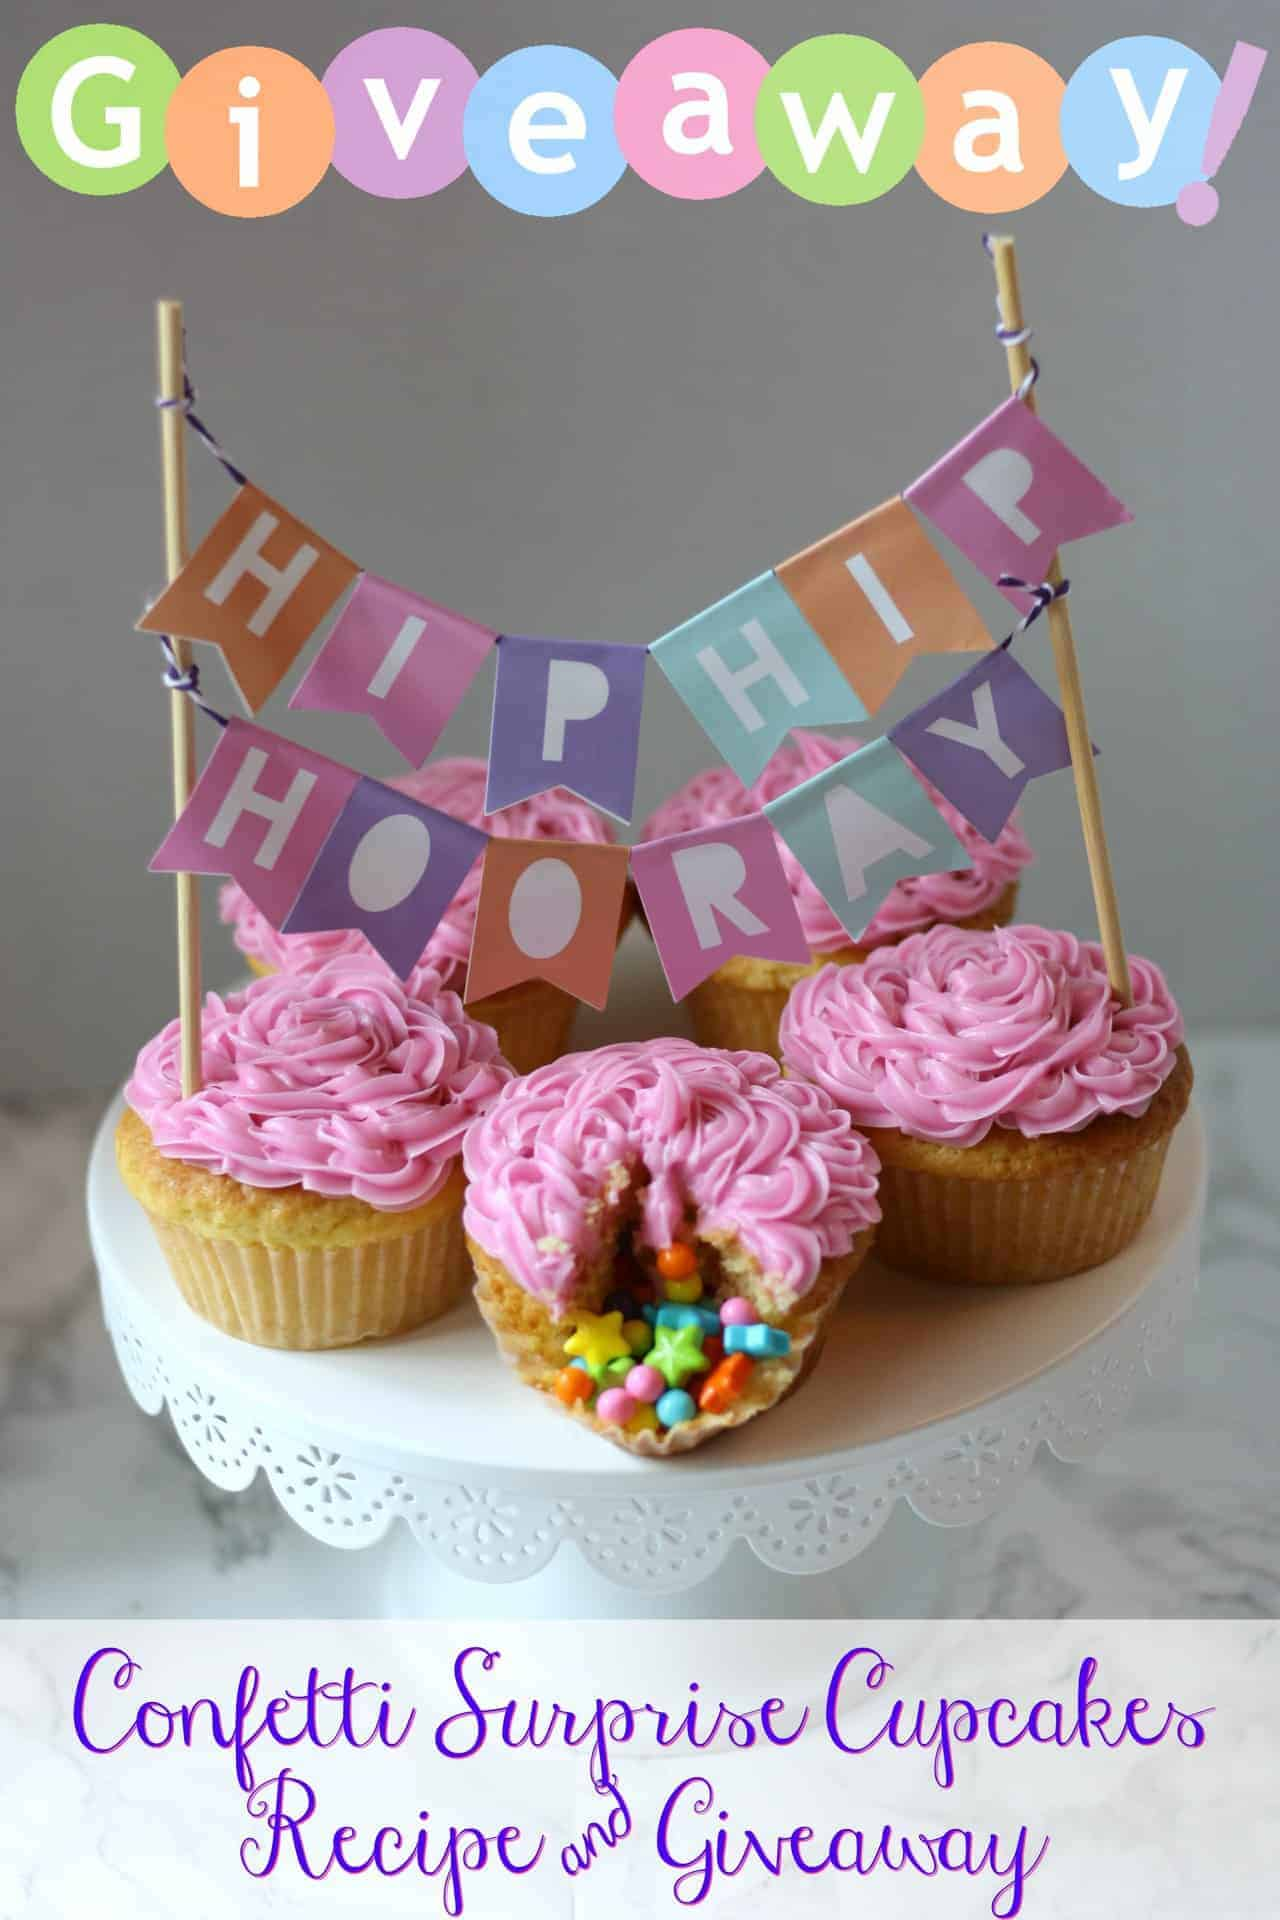 Confetti Surprise Cupcake Recipe & Celebration by Frey Candy Prize Pack Giveaway